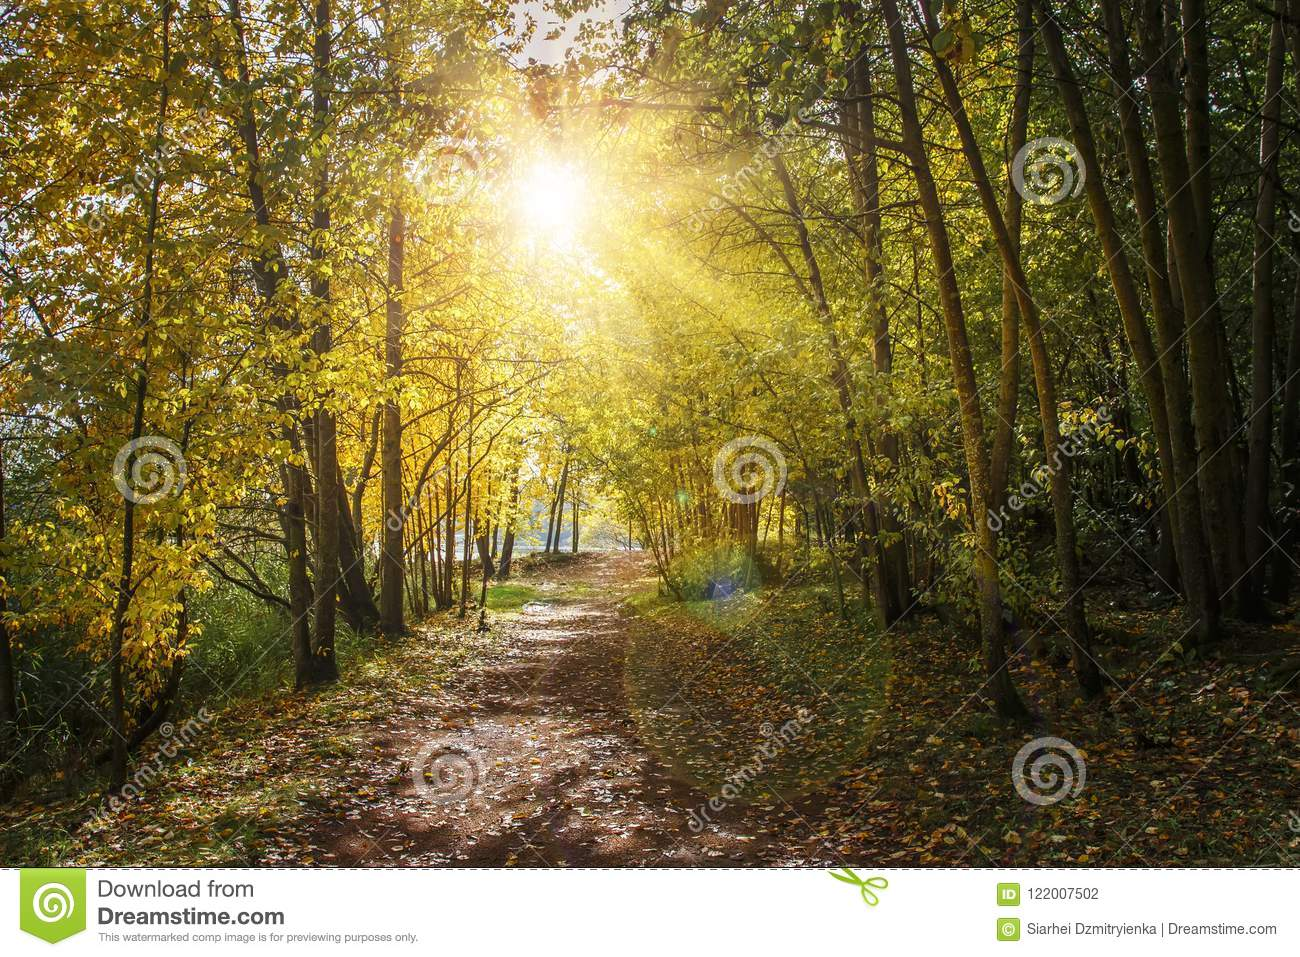 Autumn nature landscape with path in yellow forest. Sunlight in autumn park. Forest road under colorful trees. Scenery of nature